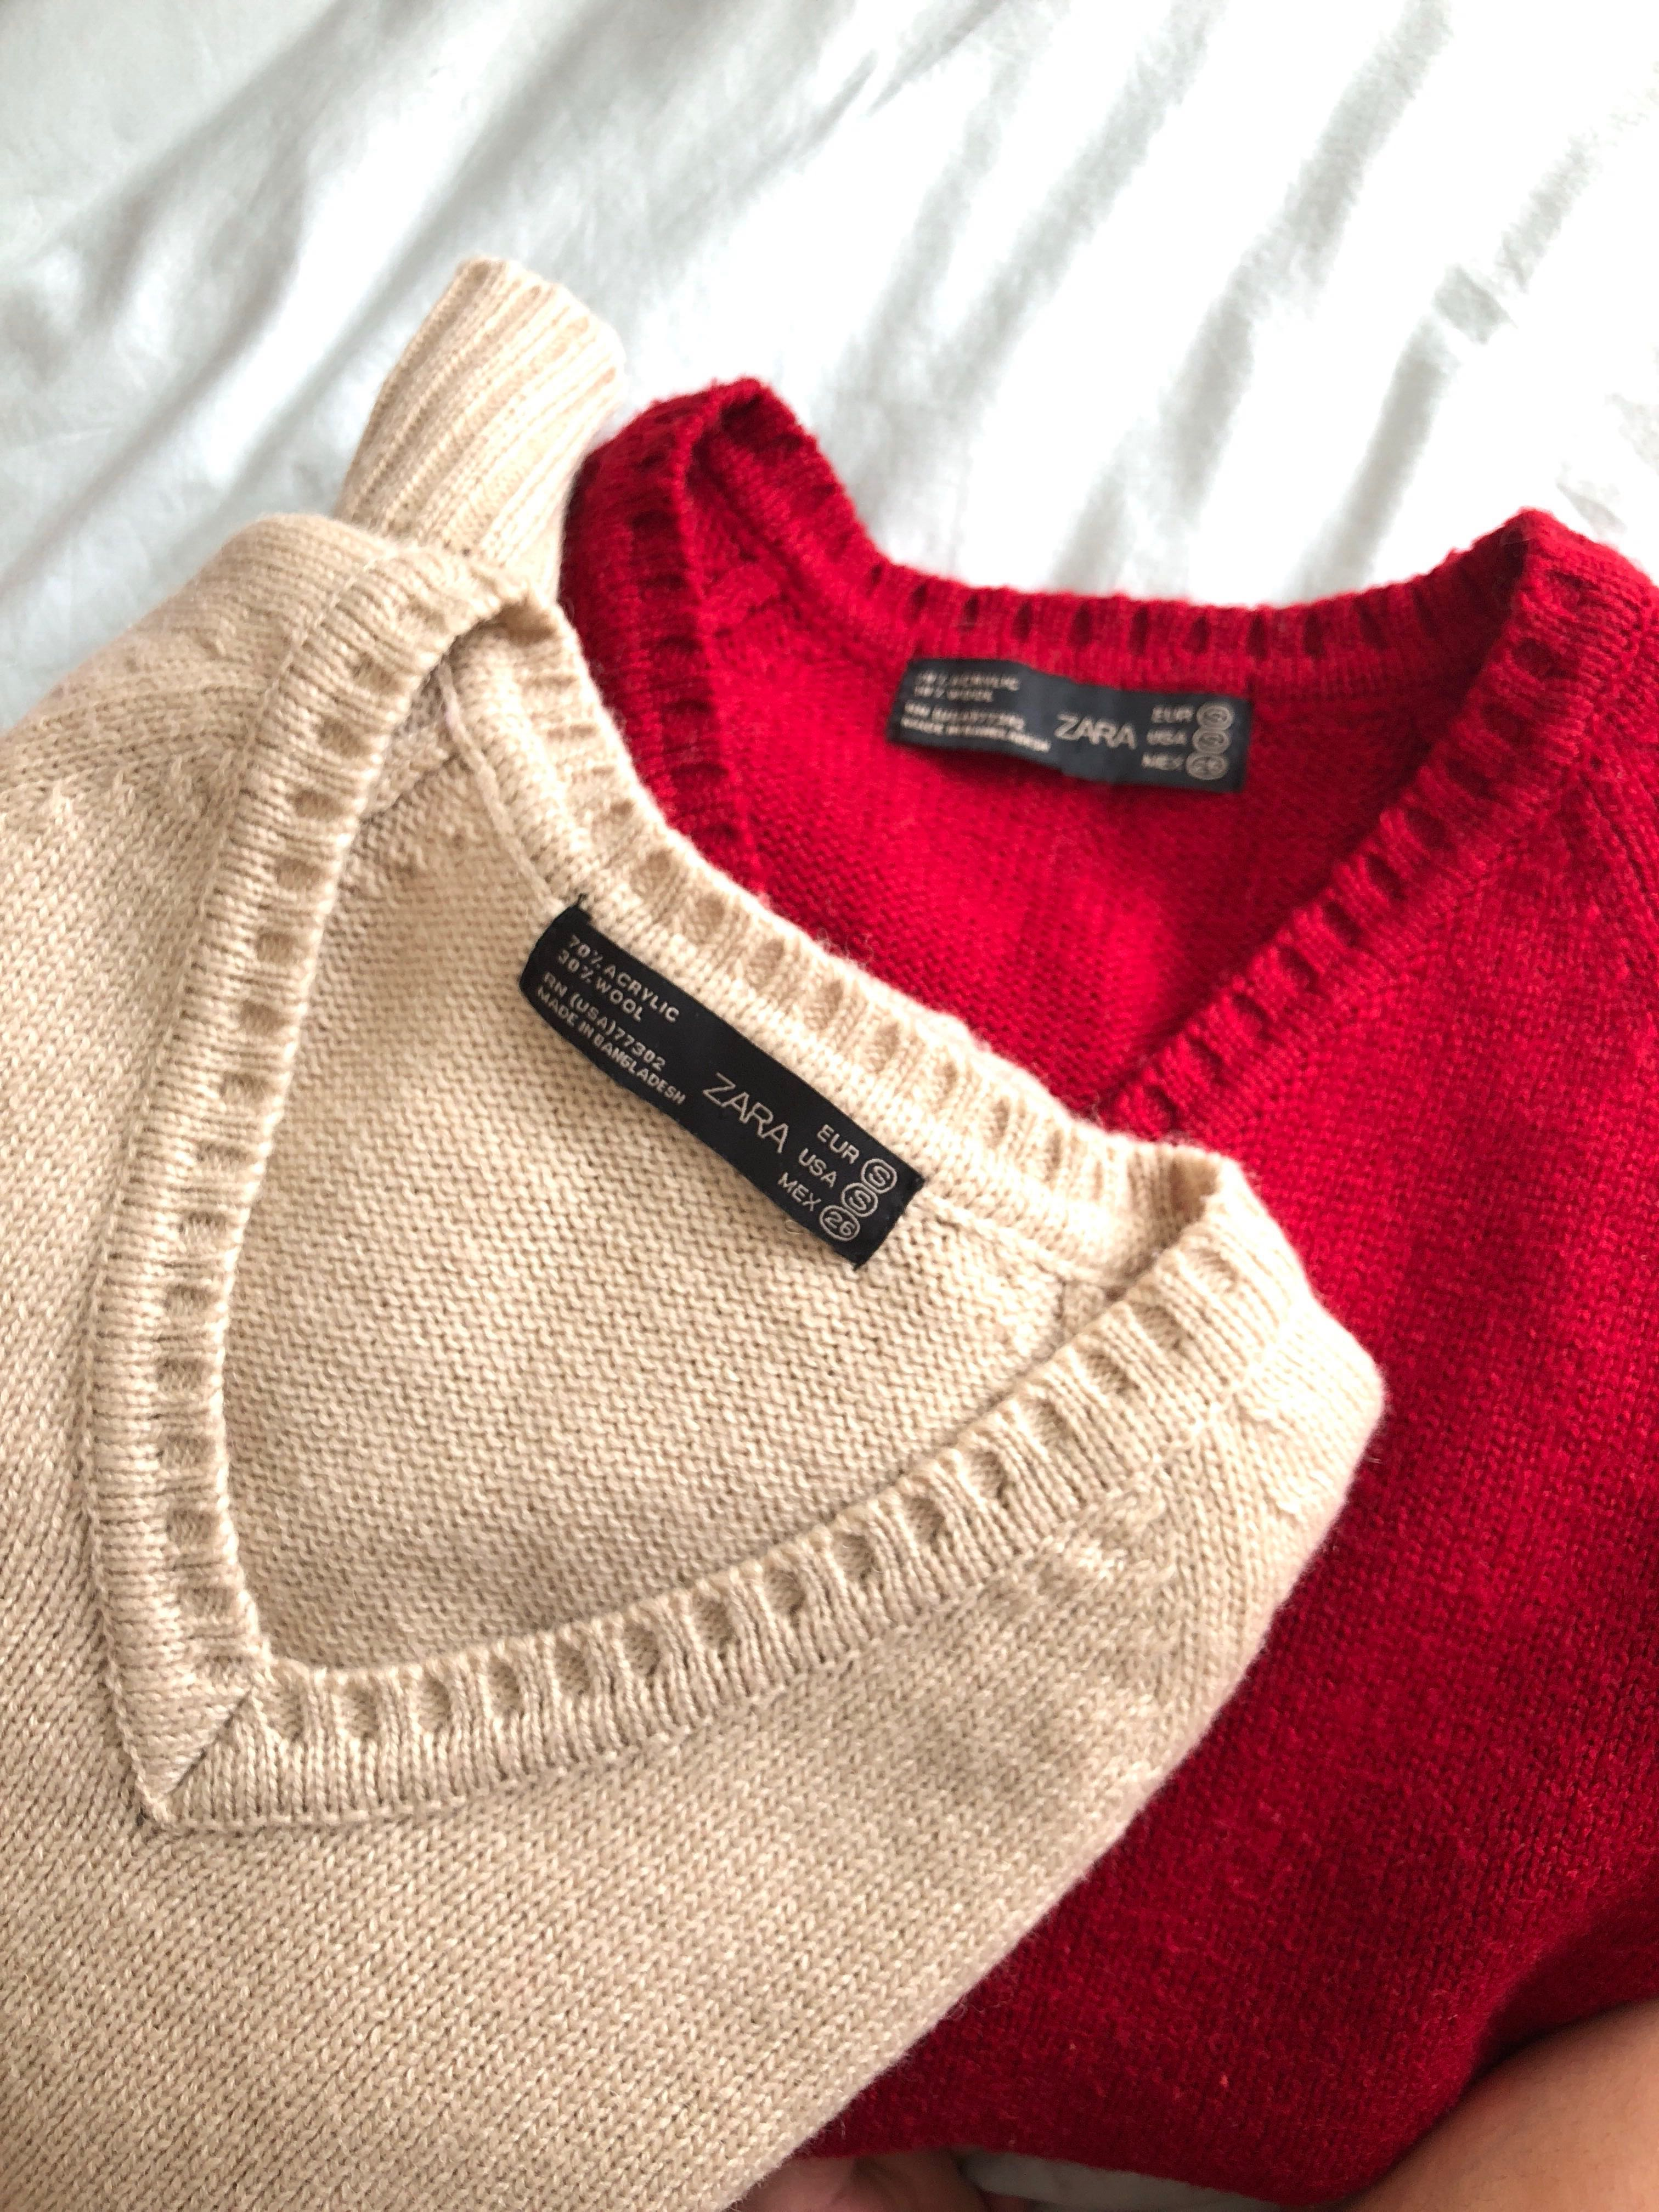 94832342 Zara Knit Sweaters, Women's Fashion, Clothes, Tops on Carousell